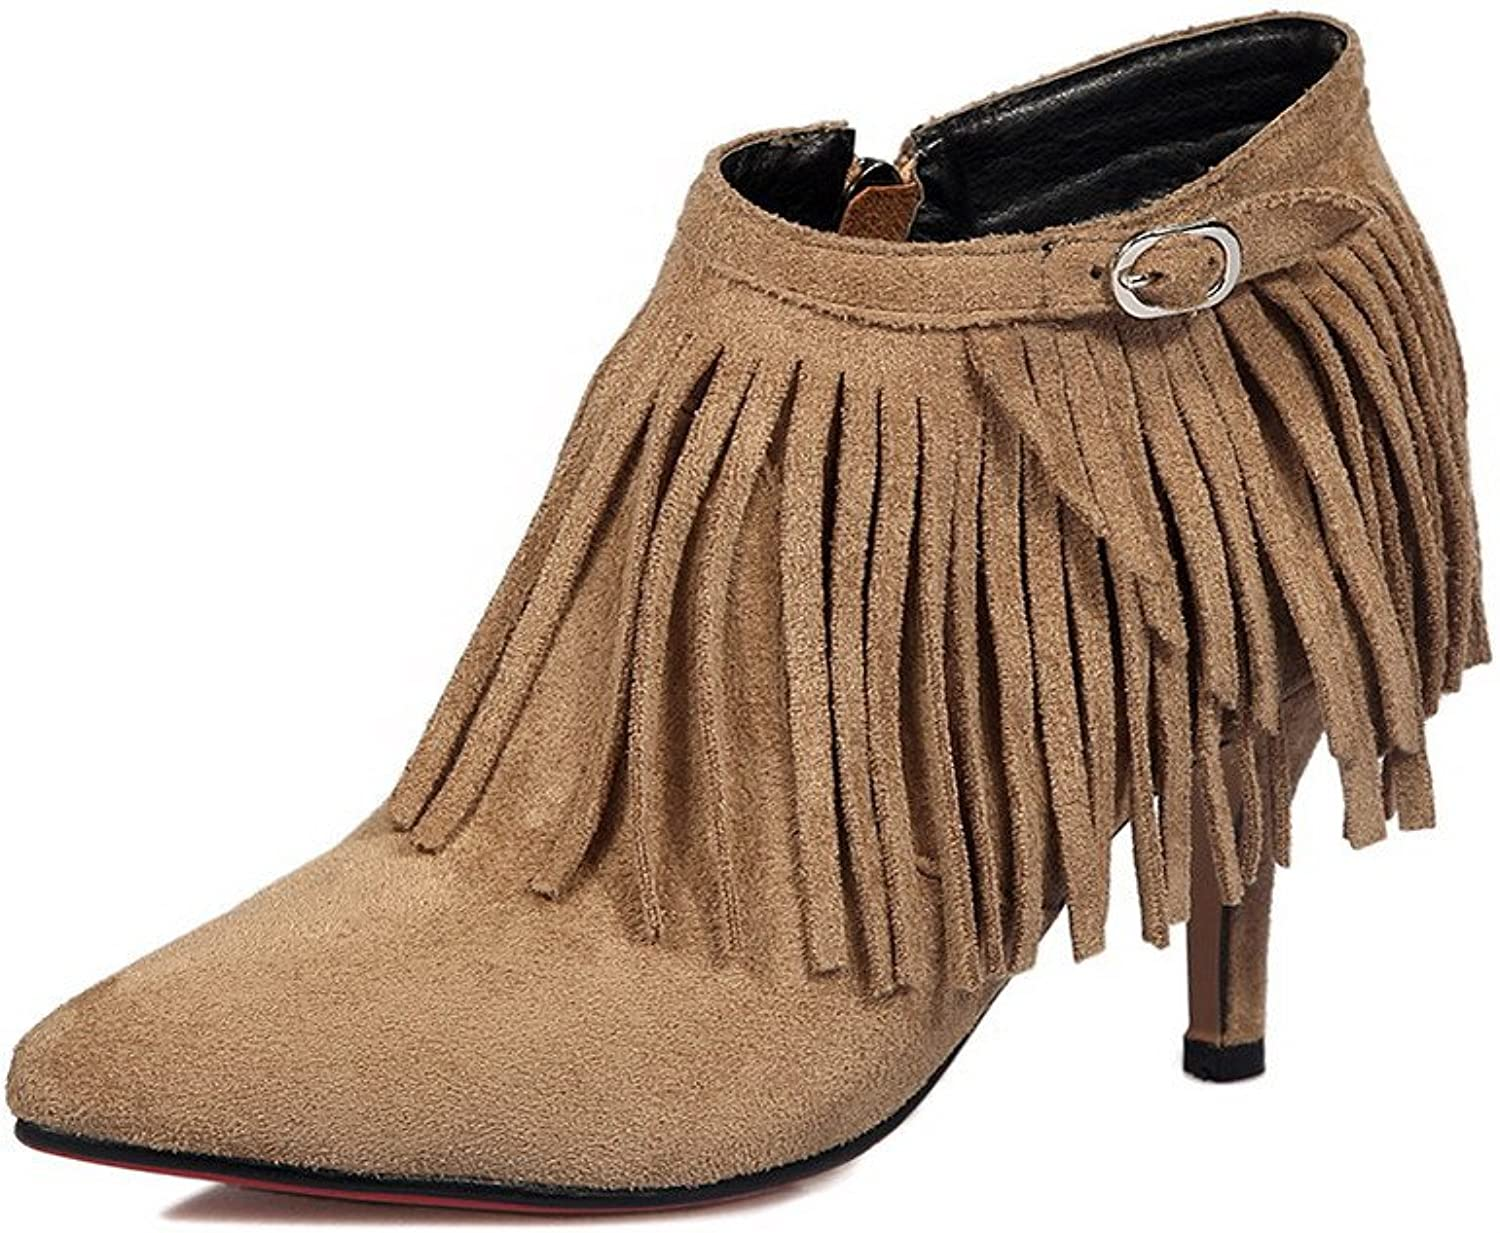 AllhqFashion Women's Pointed Closed Toe Ankle High Spikes Stilettos Fringed Frosted Boots